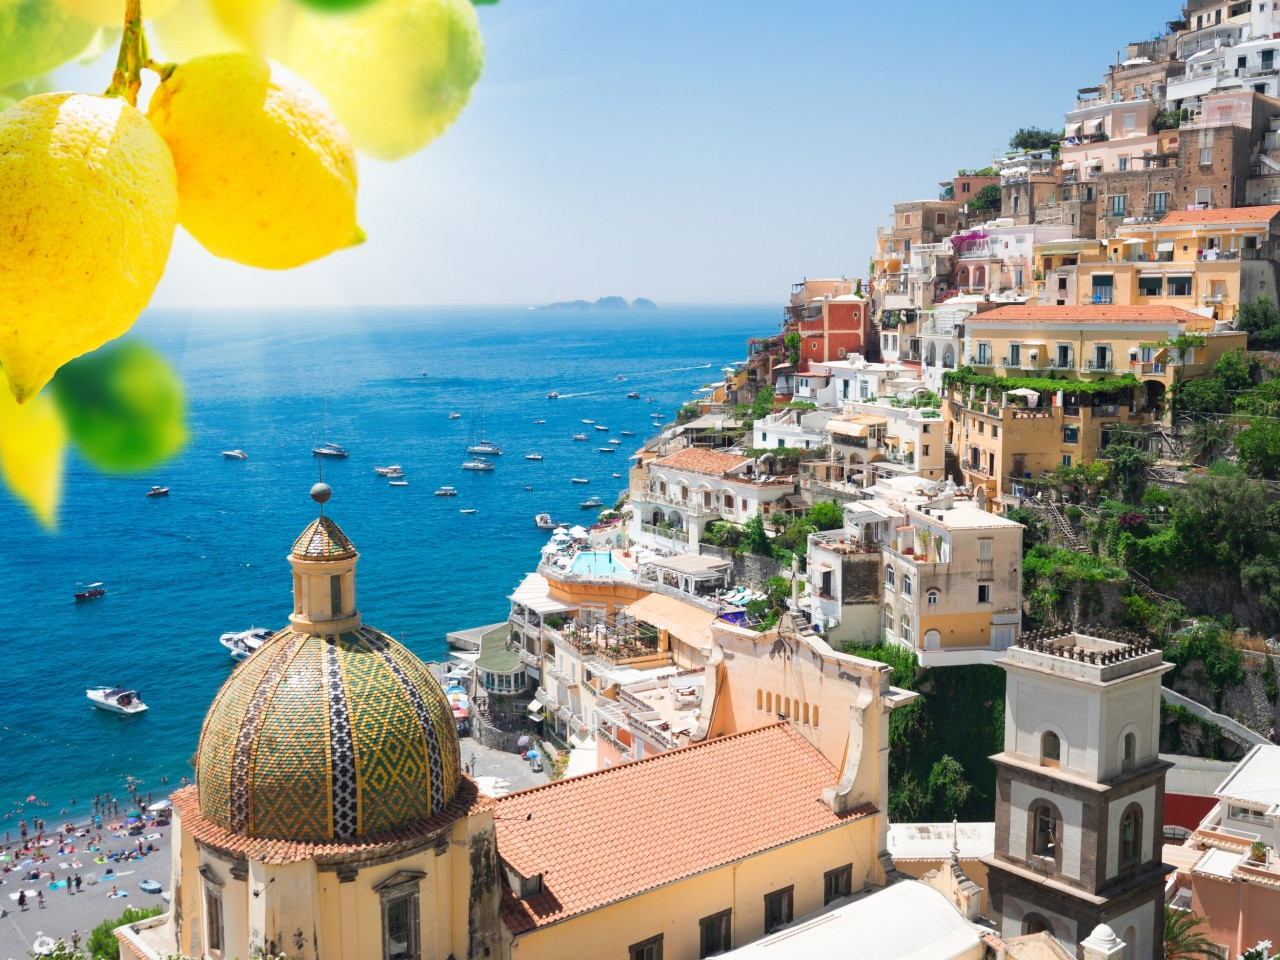 Private tour in Positano with Ceramic and Limoncello tasting|Star cars